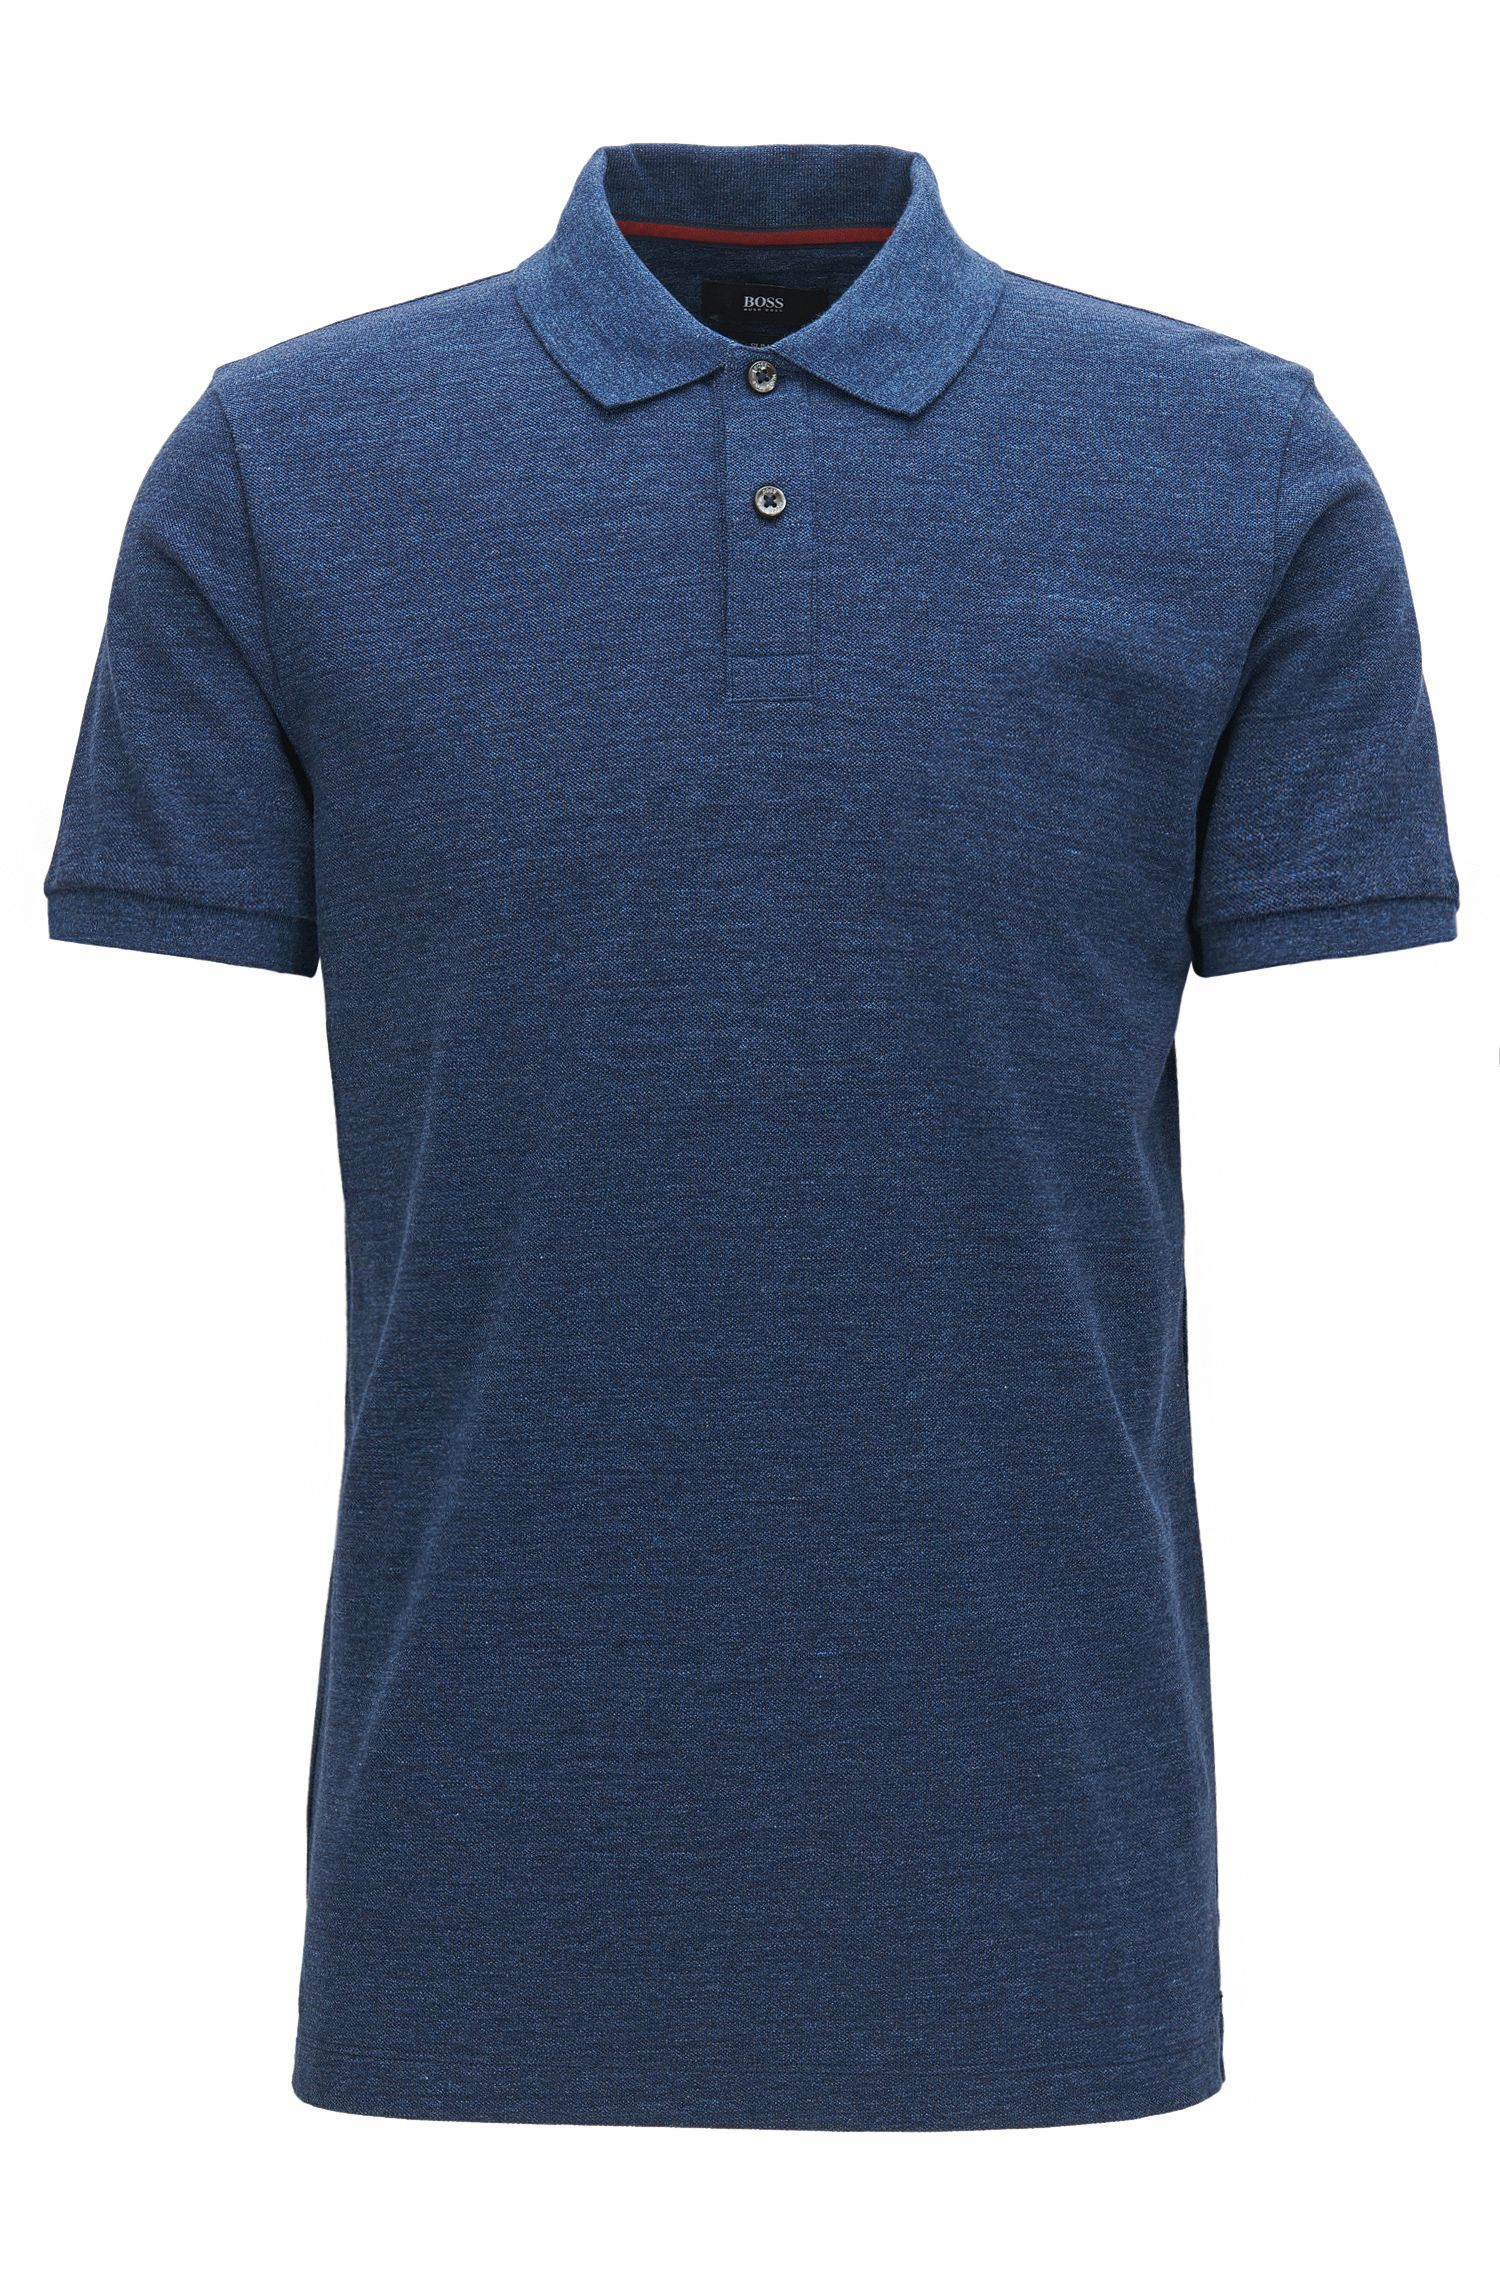 Heathered Cotton Polo Shirt, Slim Fit | Phillipson